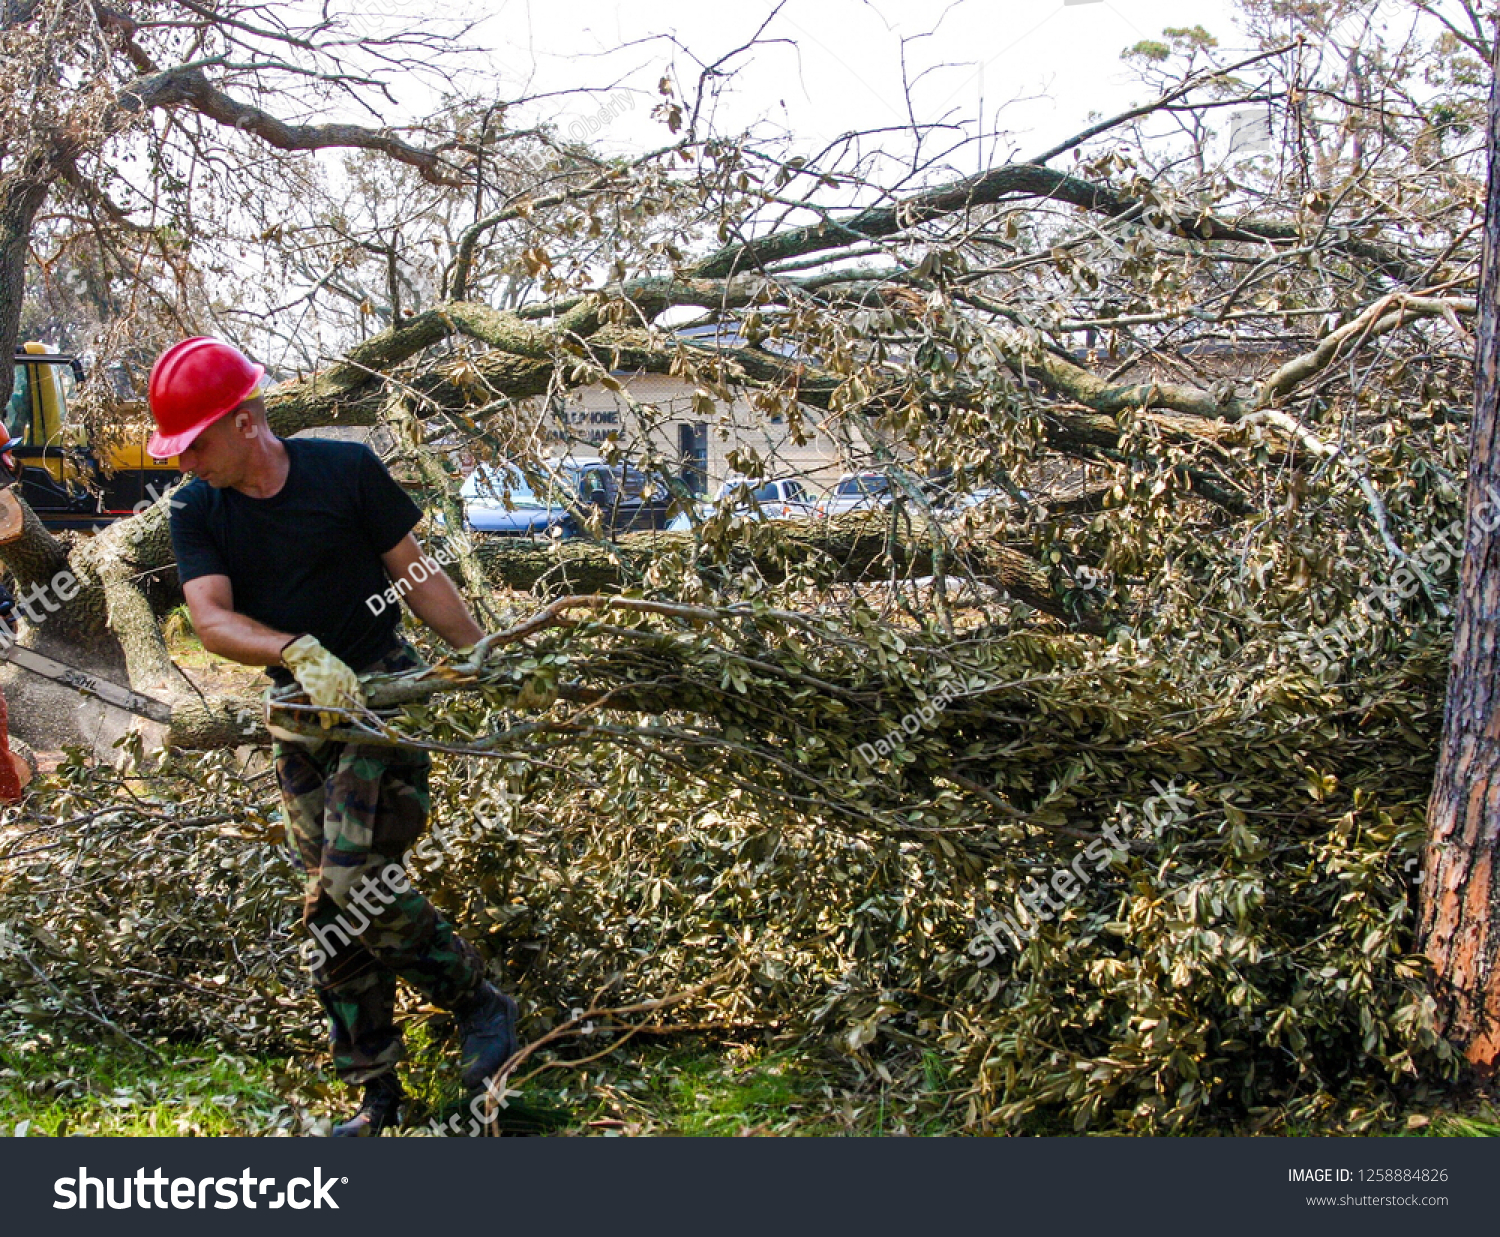 Civil Engineer Pulls Branches Felled By Stock Photo (Edit